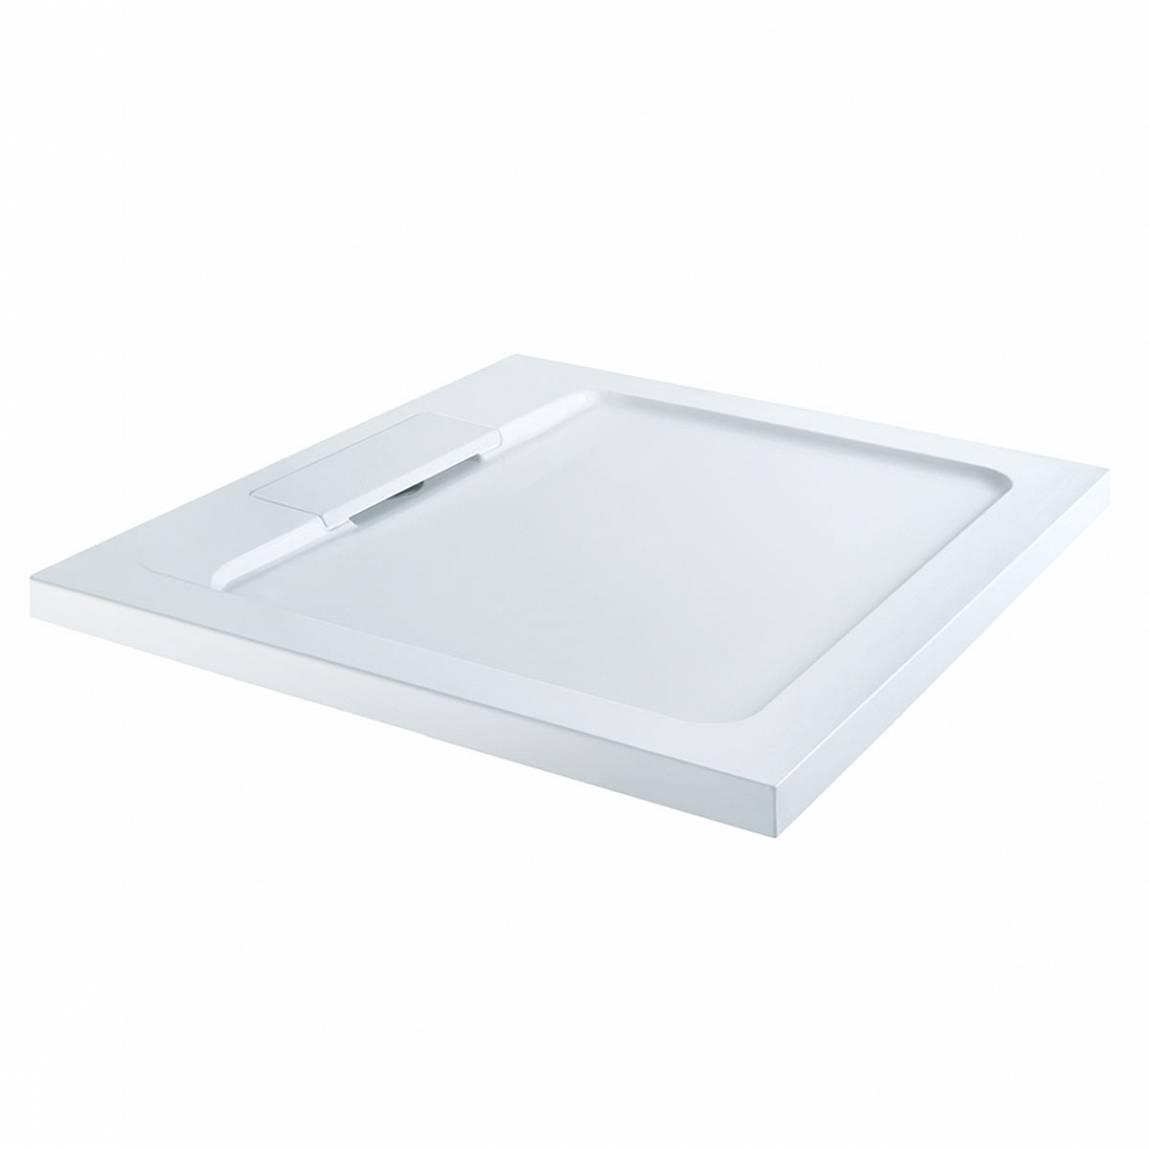 Image of Designer Square Stone Shower Tray 900 x 900